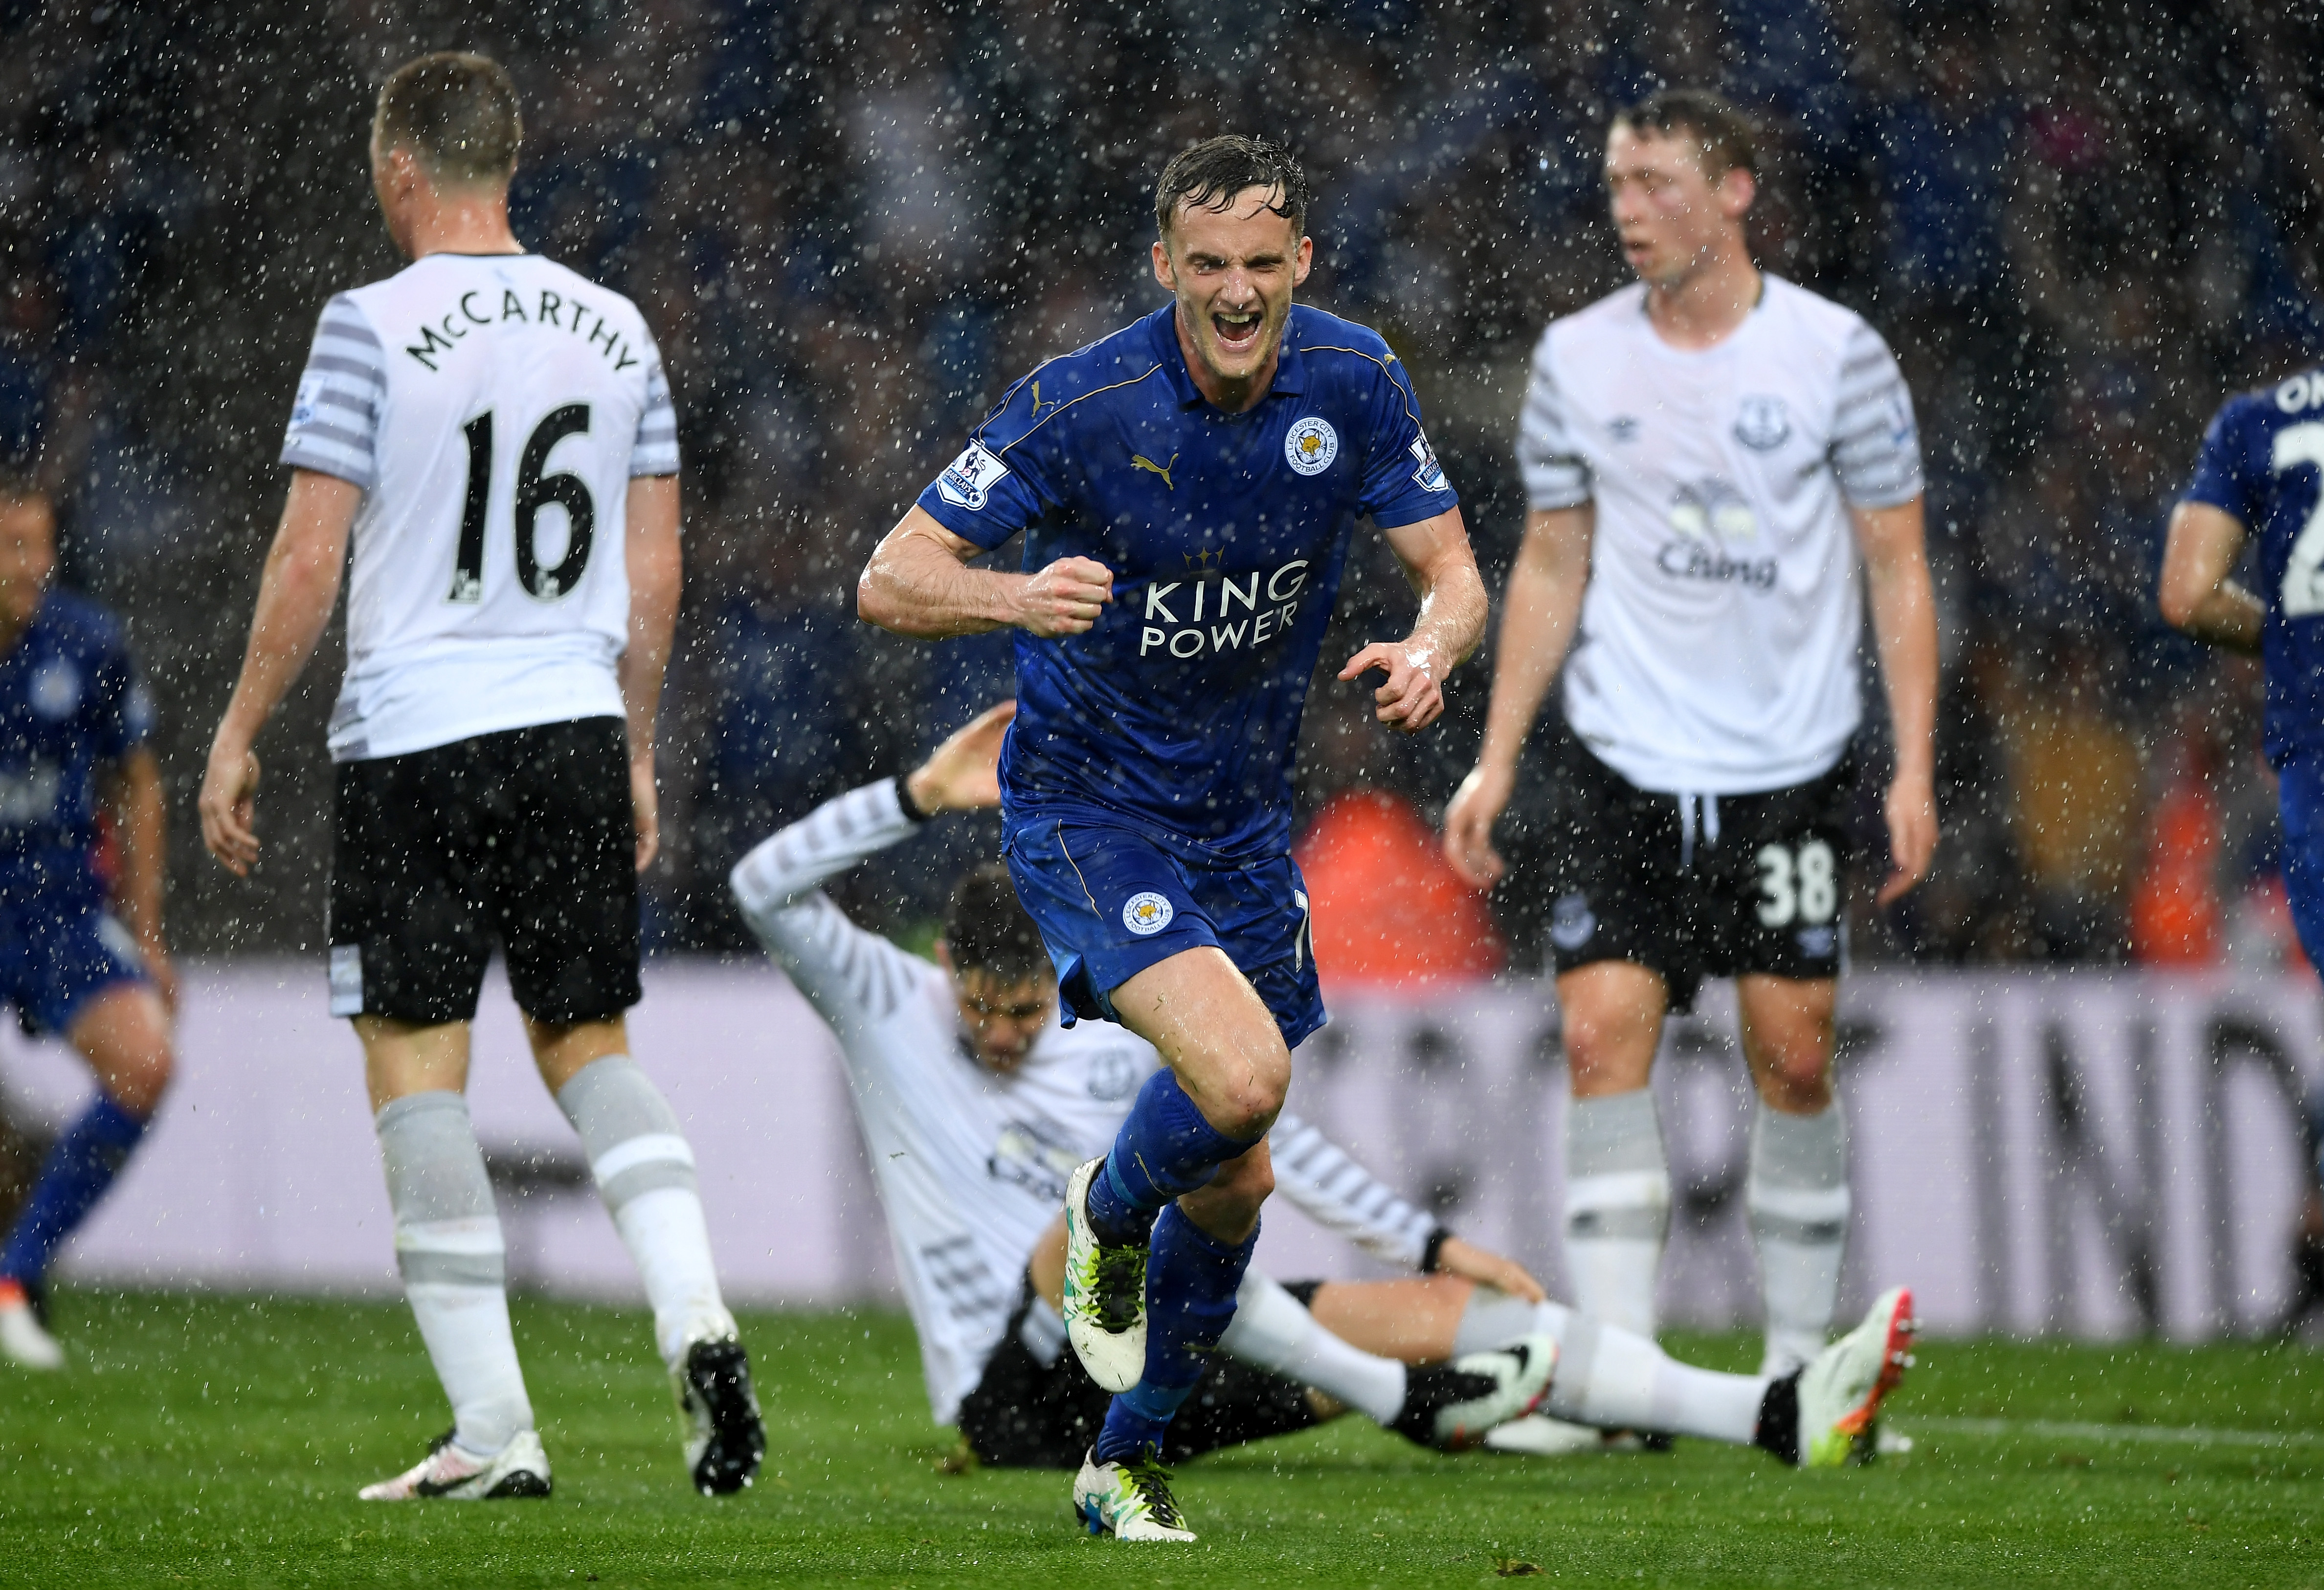 Andy King reveals why signing Slimani is good news for Jamie Vardy